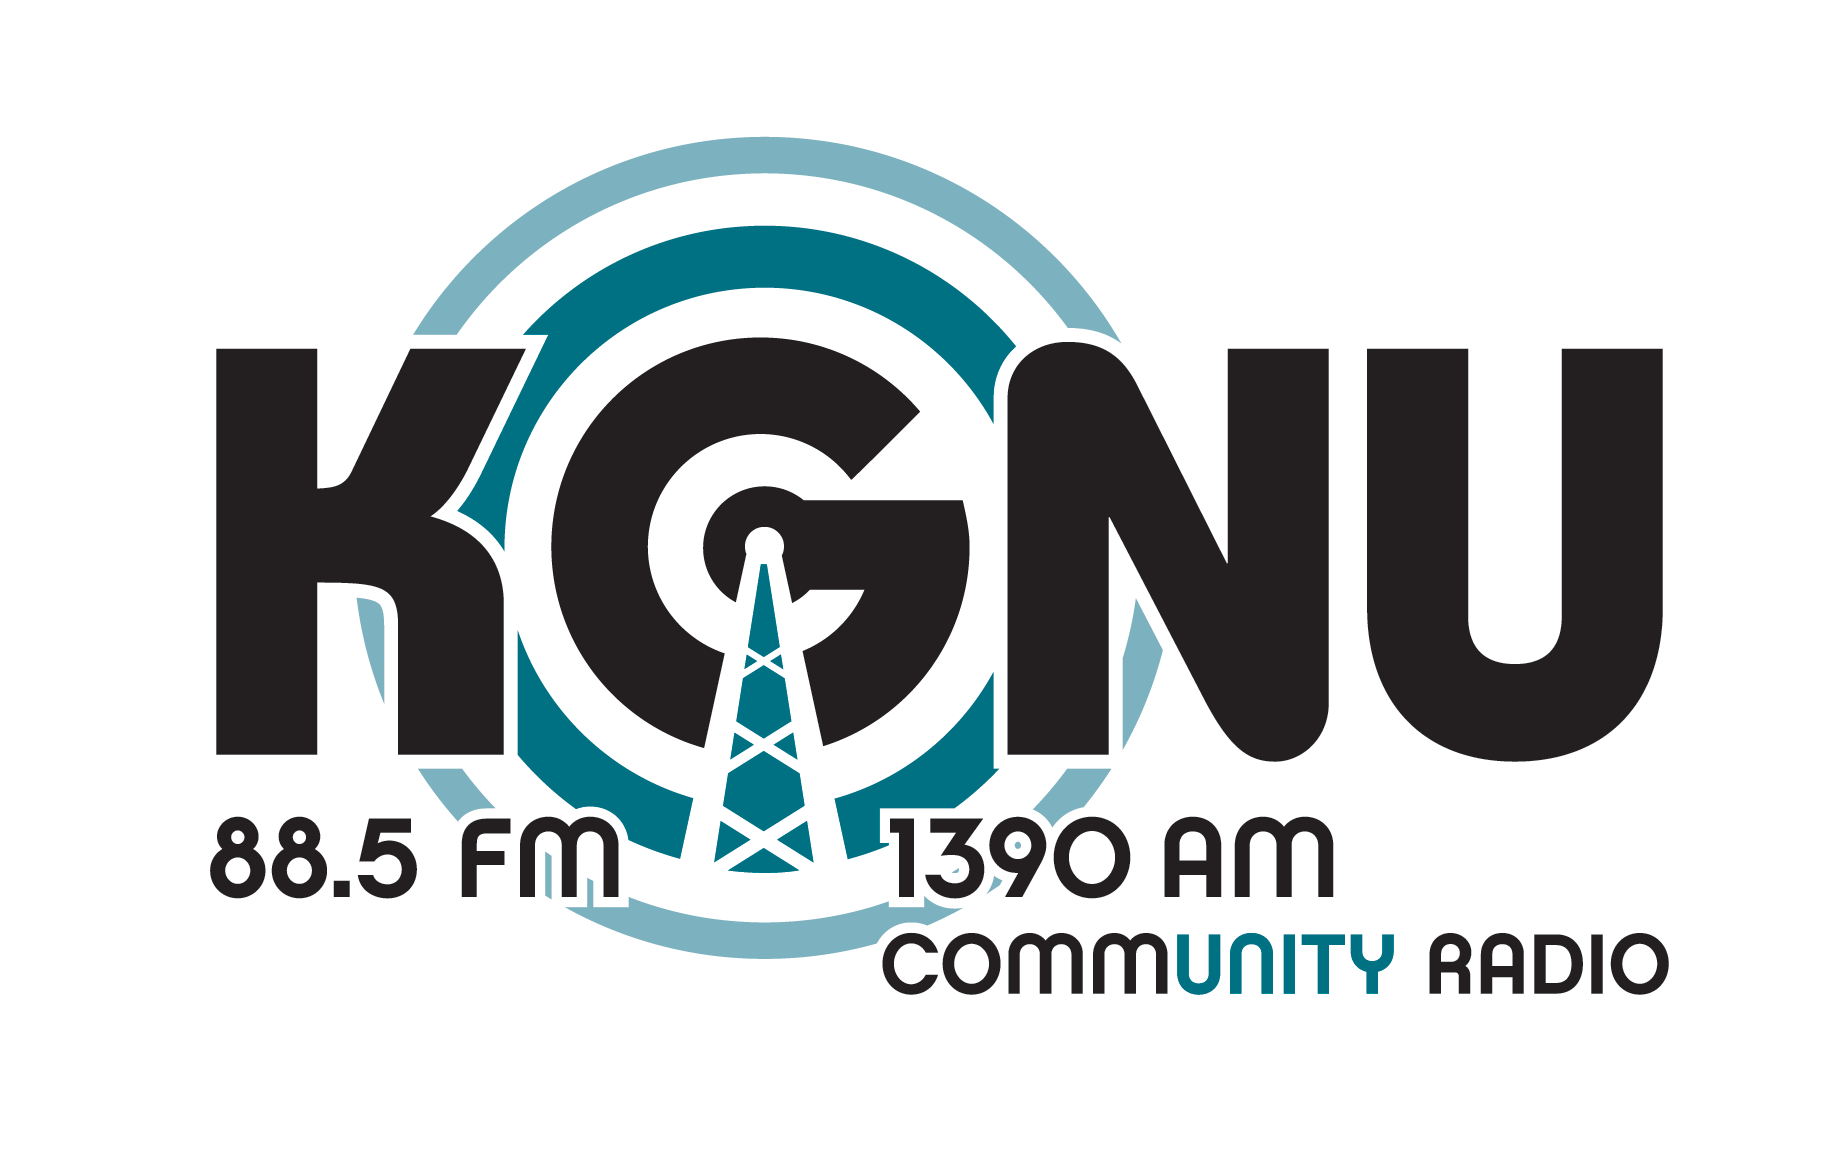 Support KGNU Community Radio